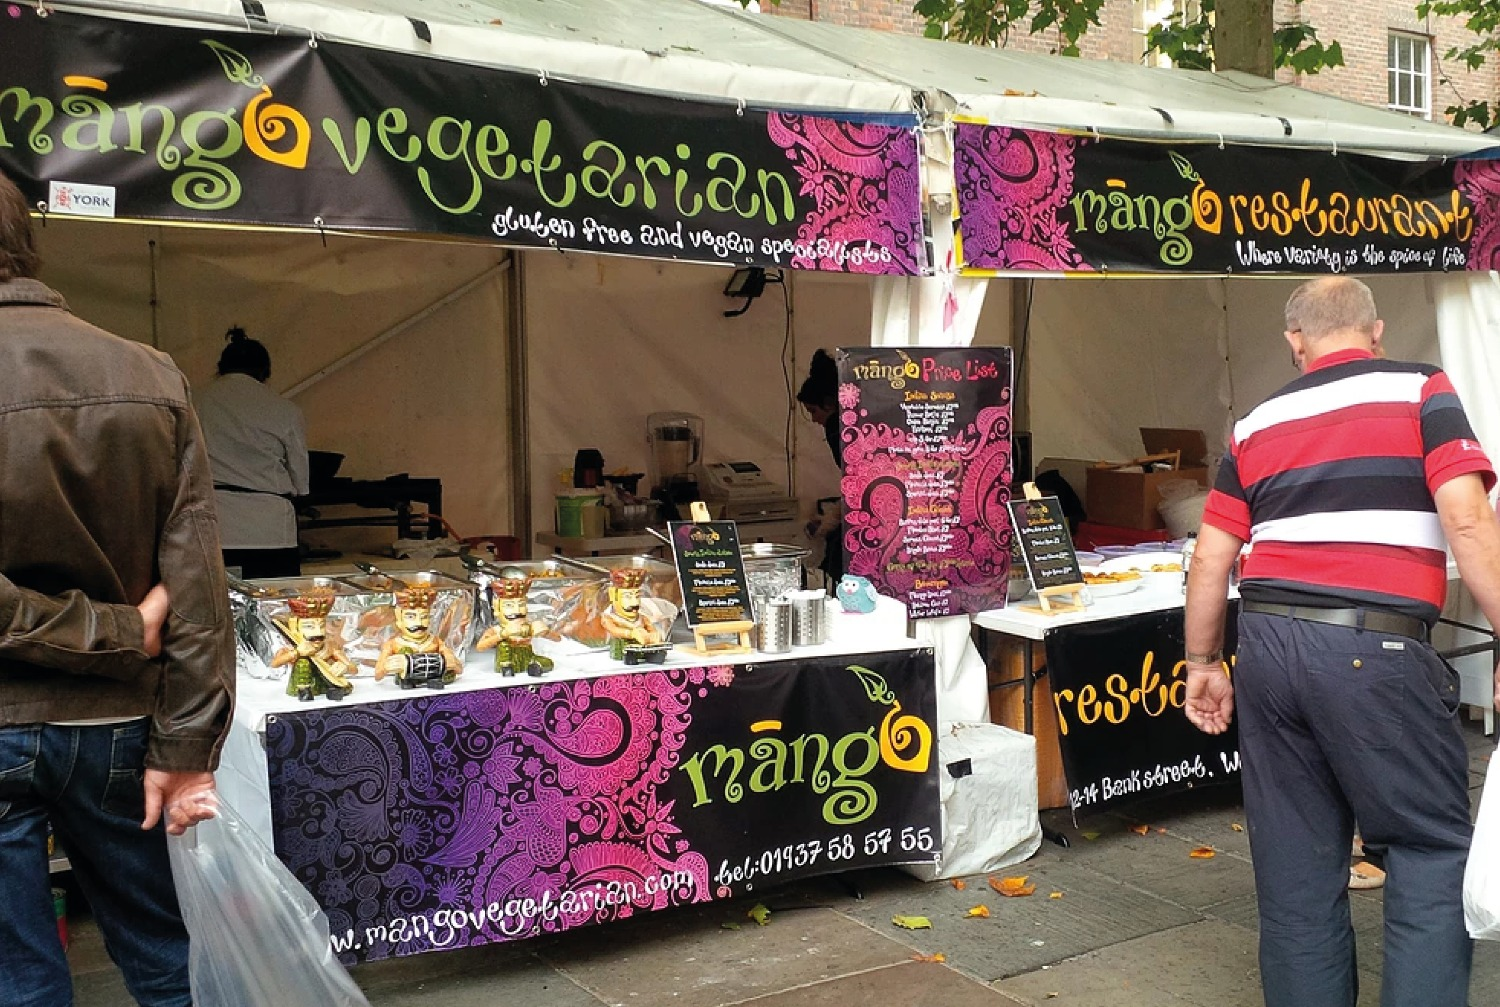 Food festival stall